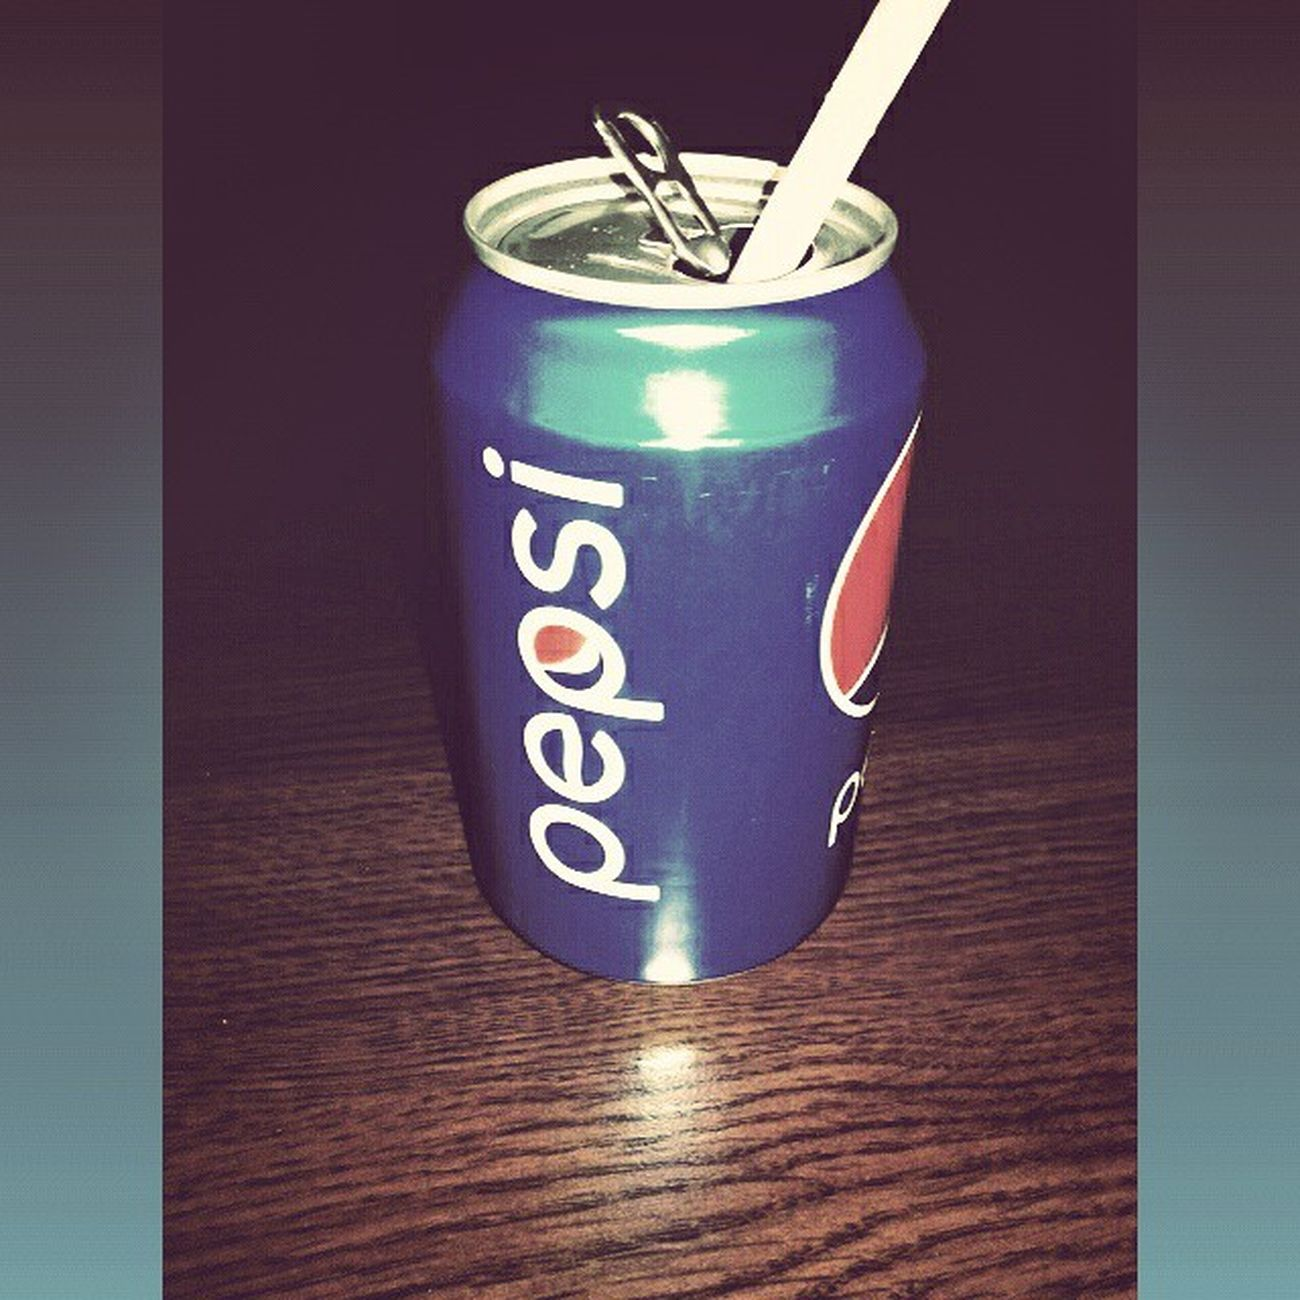 Love Pepsi Blue Alltime Applecam Production Romaniiautalent 👍💋 Drink Drinks Slurp Tagsforlikes Pub Bar Liquor Yum Yummy Thirst Thirsty  Instagood Cocktail Cocktails Drinkup Glass Can Photooftheday beer beers wine